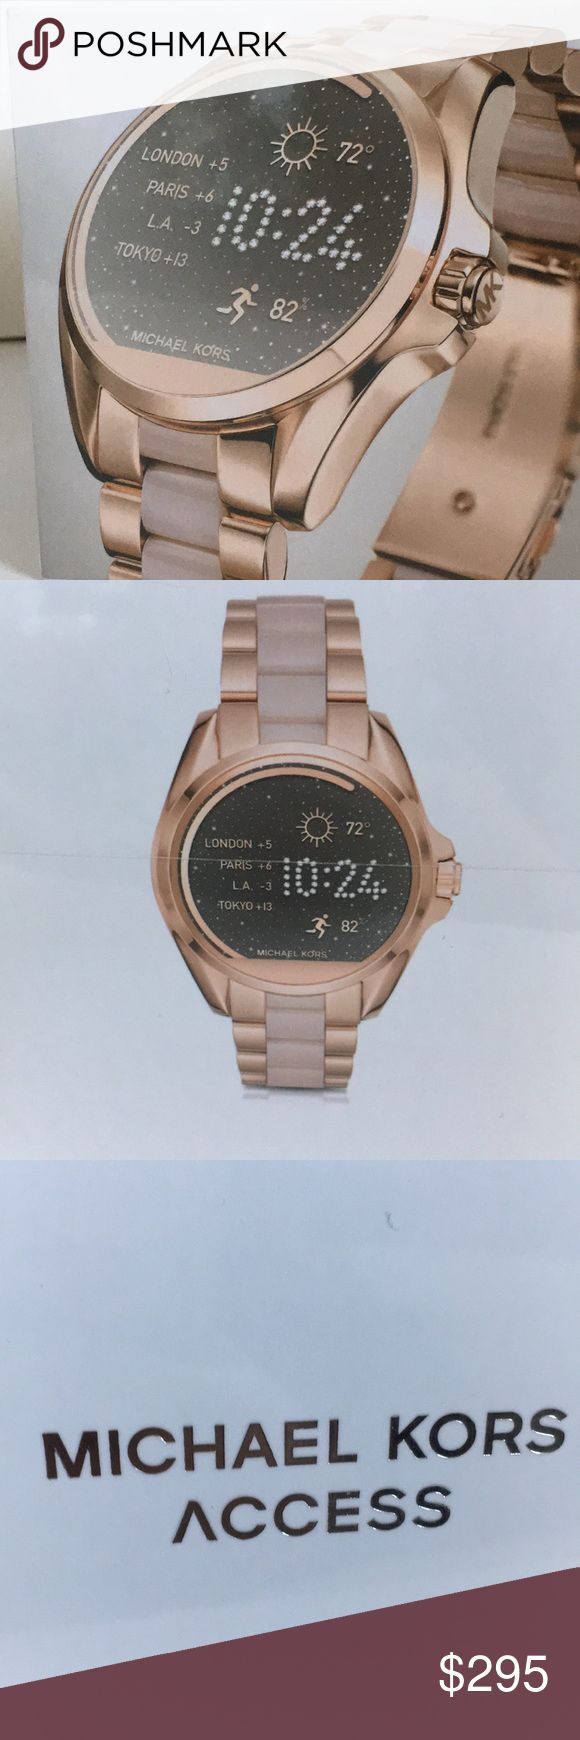 Michael kors smart watch New! Still wrapped! Compatible with iPhone and android Michael Kors Accessories Watches